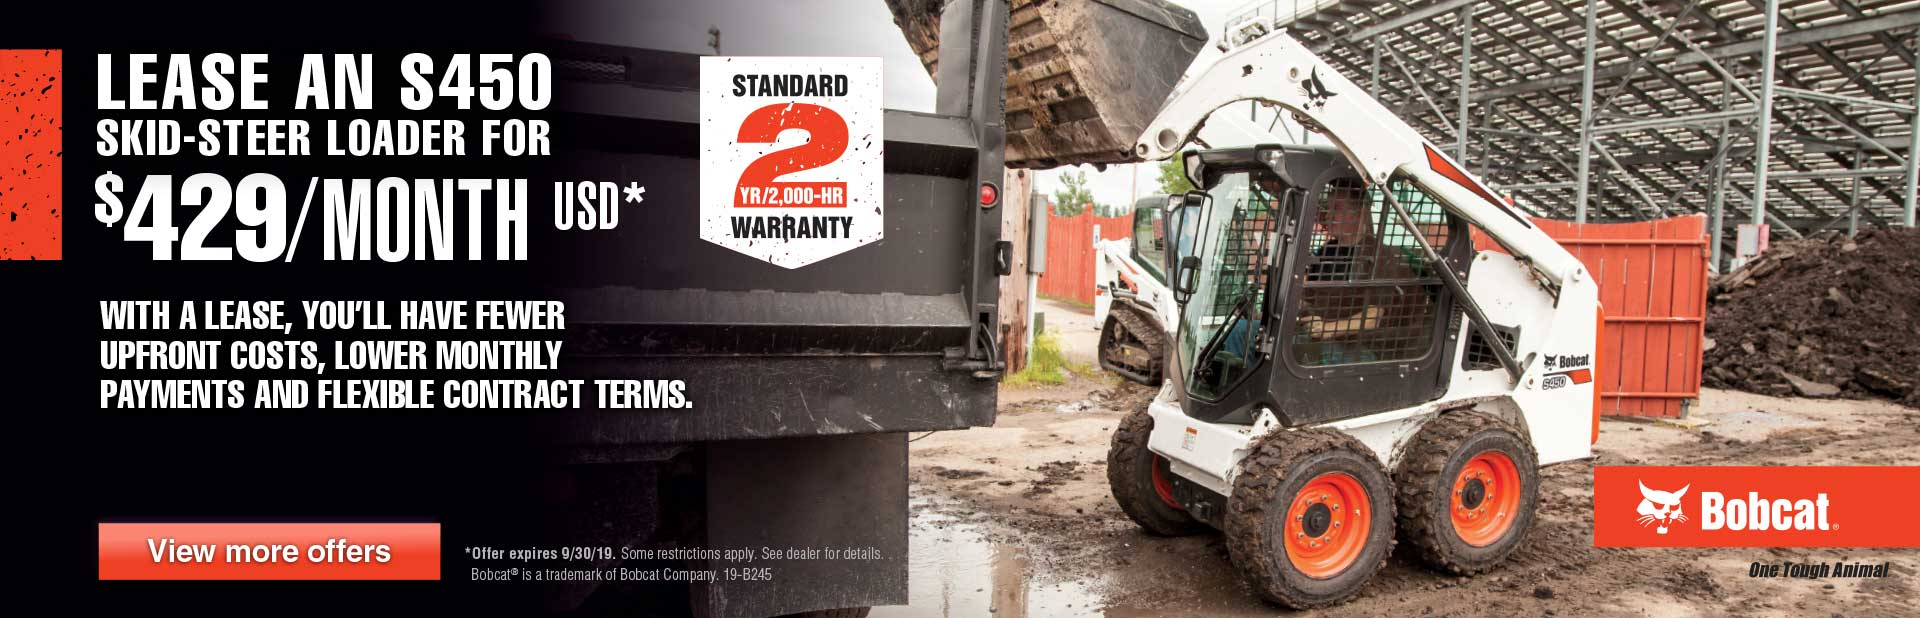 Bobcat S450 Lease Offer